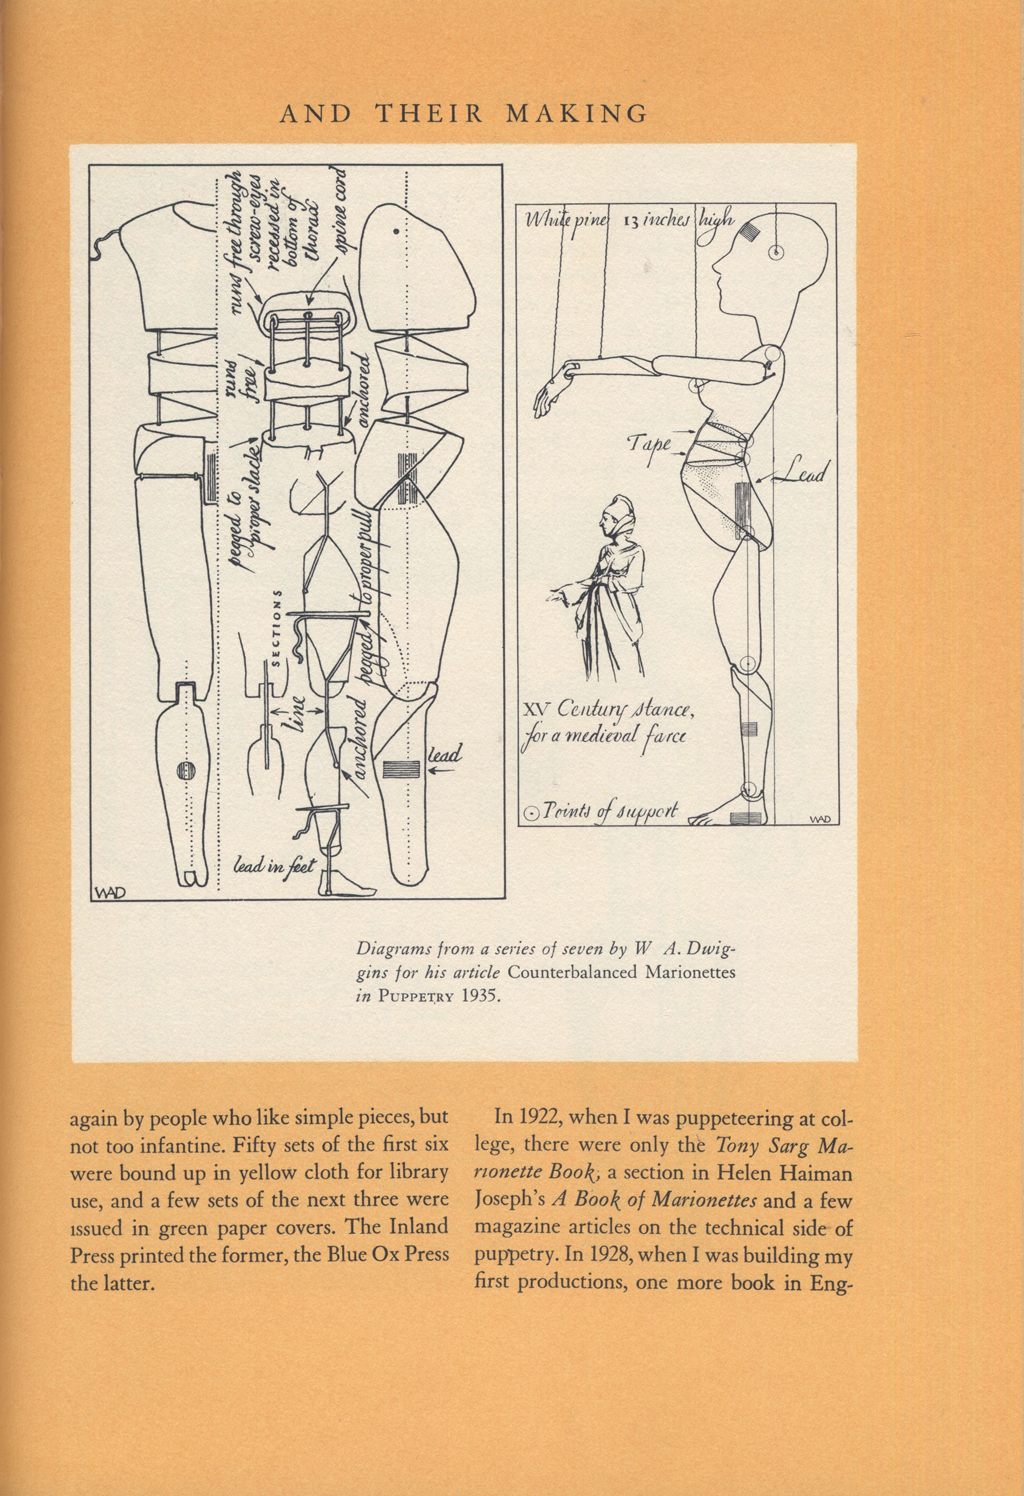 """Illustrations from """"Counterbalanced Marionettes"""" by W.A. Dwiggins reproduced in """"Puppetry Imprints & Their Making"""" by Paul McPharlin in The Annual of Bookmaking."""